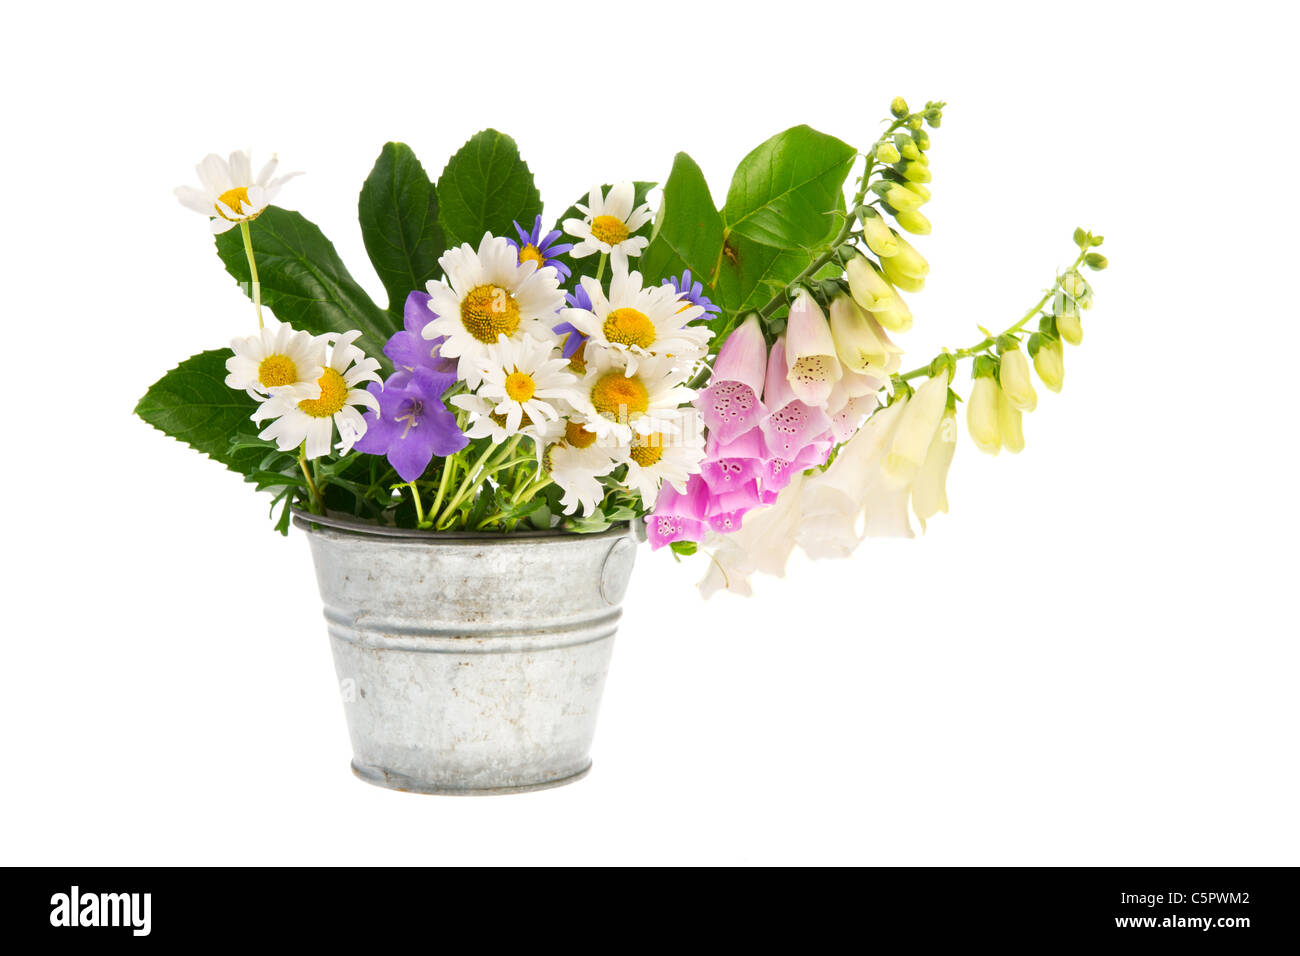 Purple Foxglove flower and white daisies and other wild flowers in bucket Stock Photo